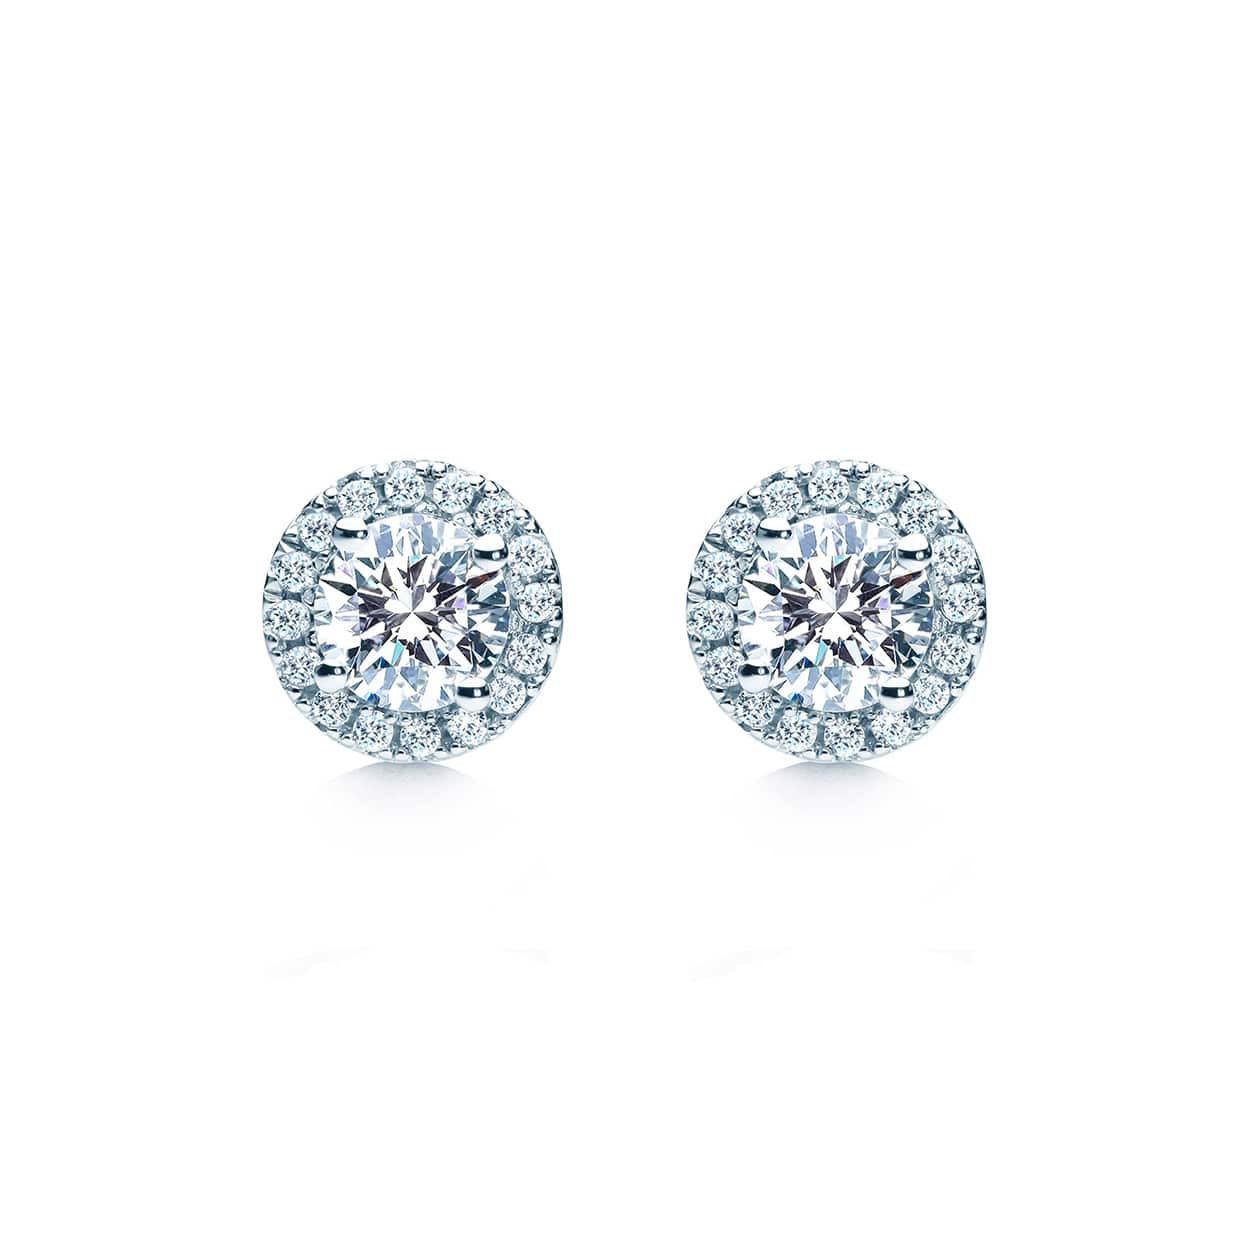 Oxford Silver Halo Round Earrings - Abelstedt